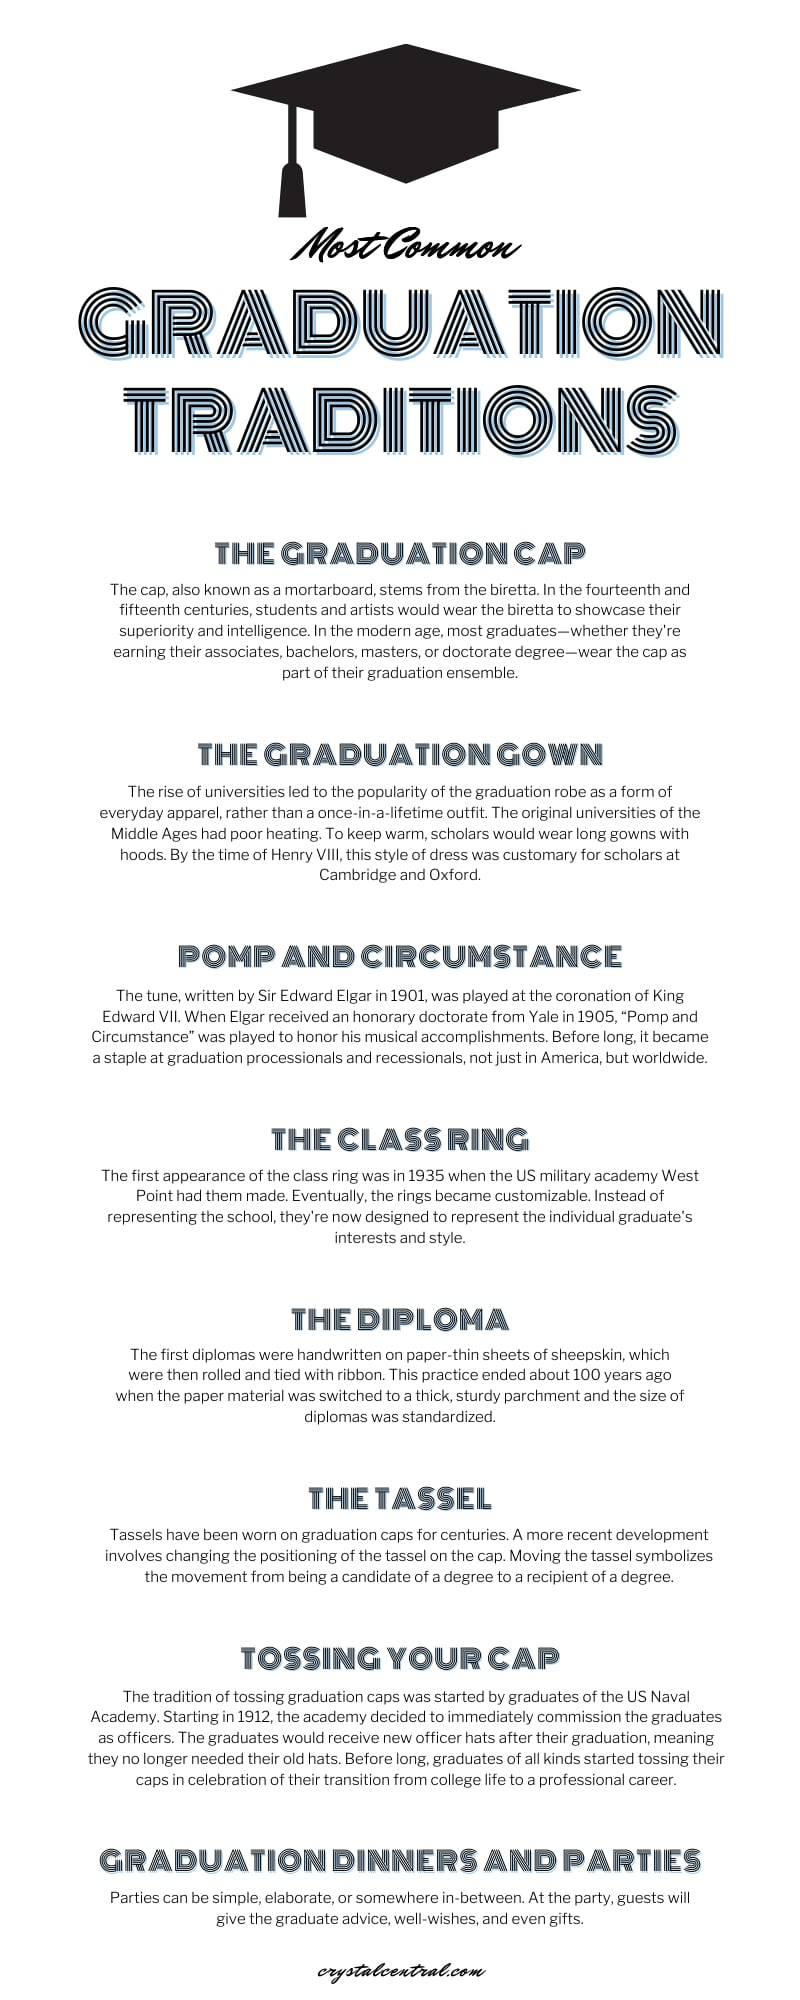 Most Common Graduation Traditions In 2021 Law School Graduation Graduation Police Academy Graduation